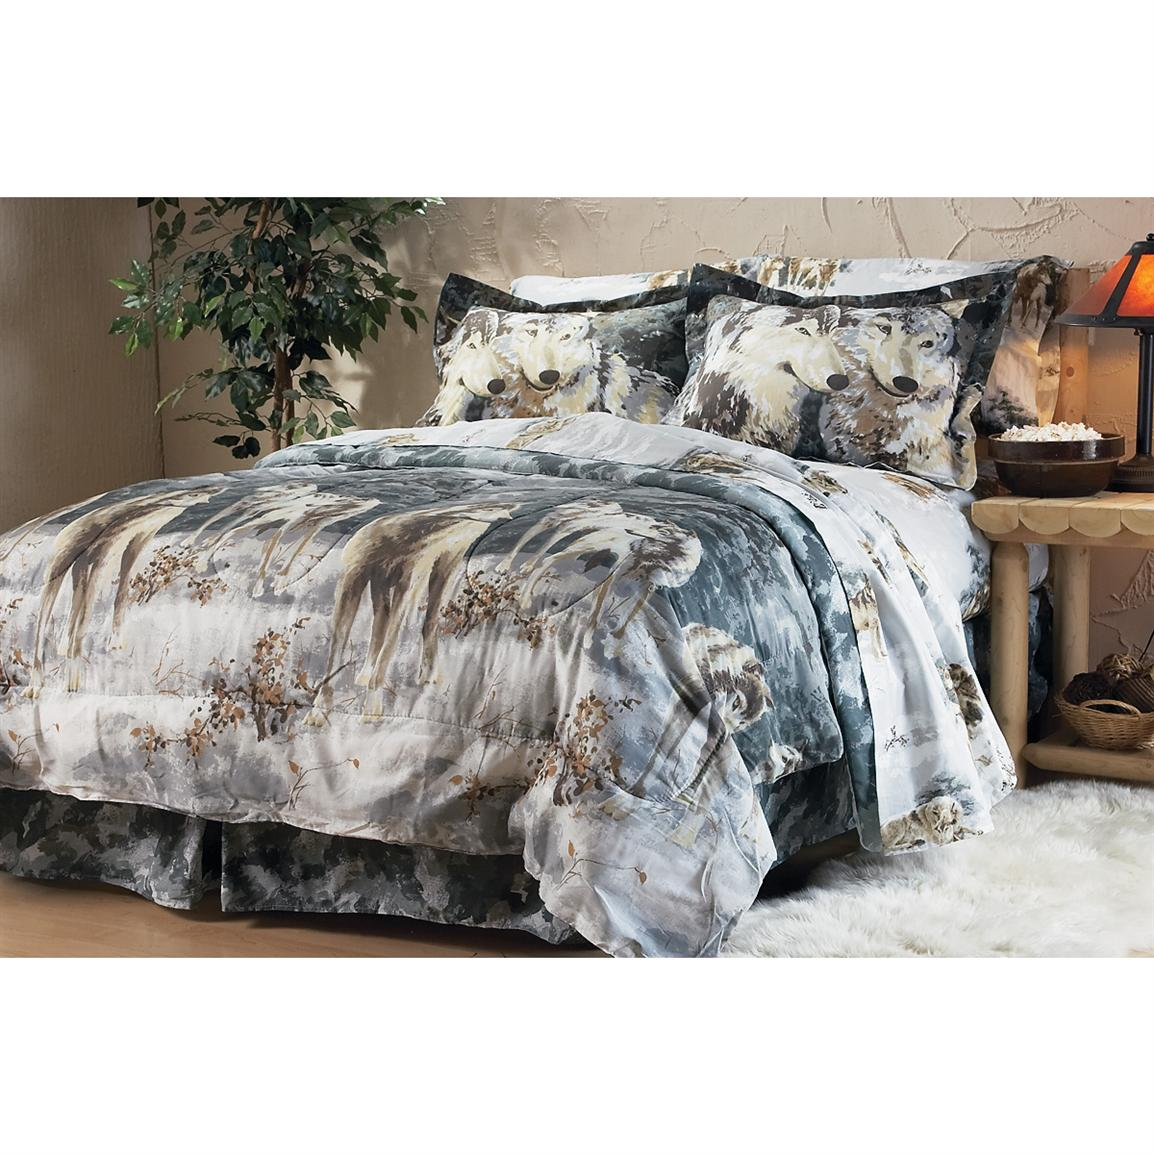 Gray Wolf Comforter Set 132423 Comforters At Sportsman